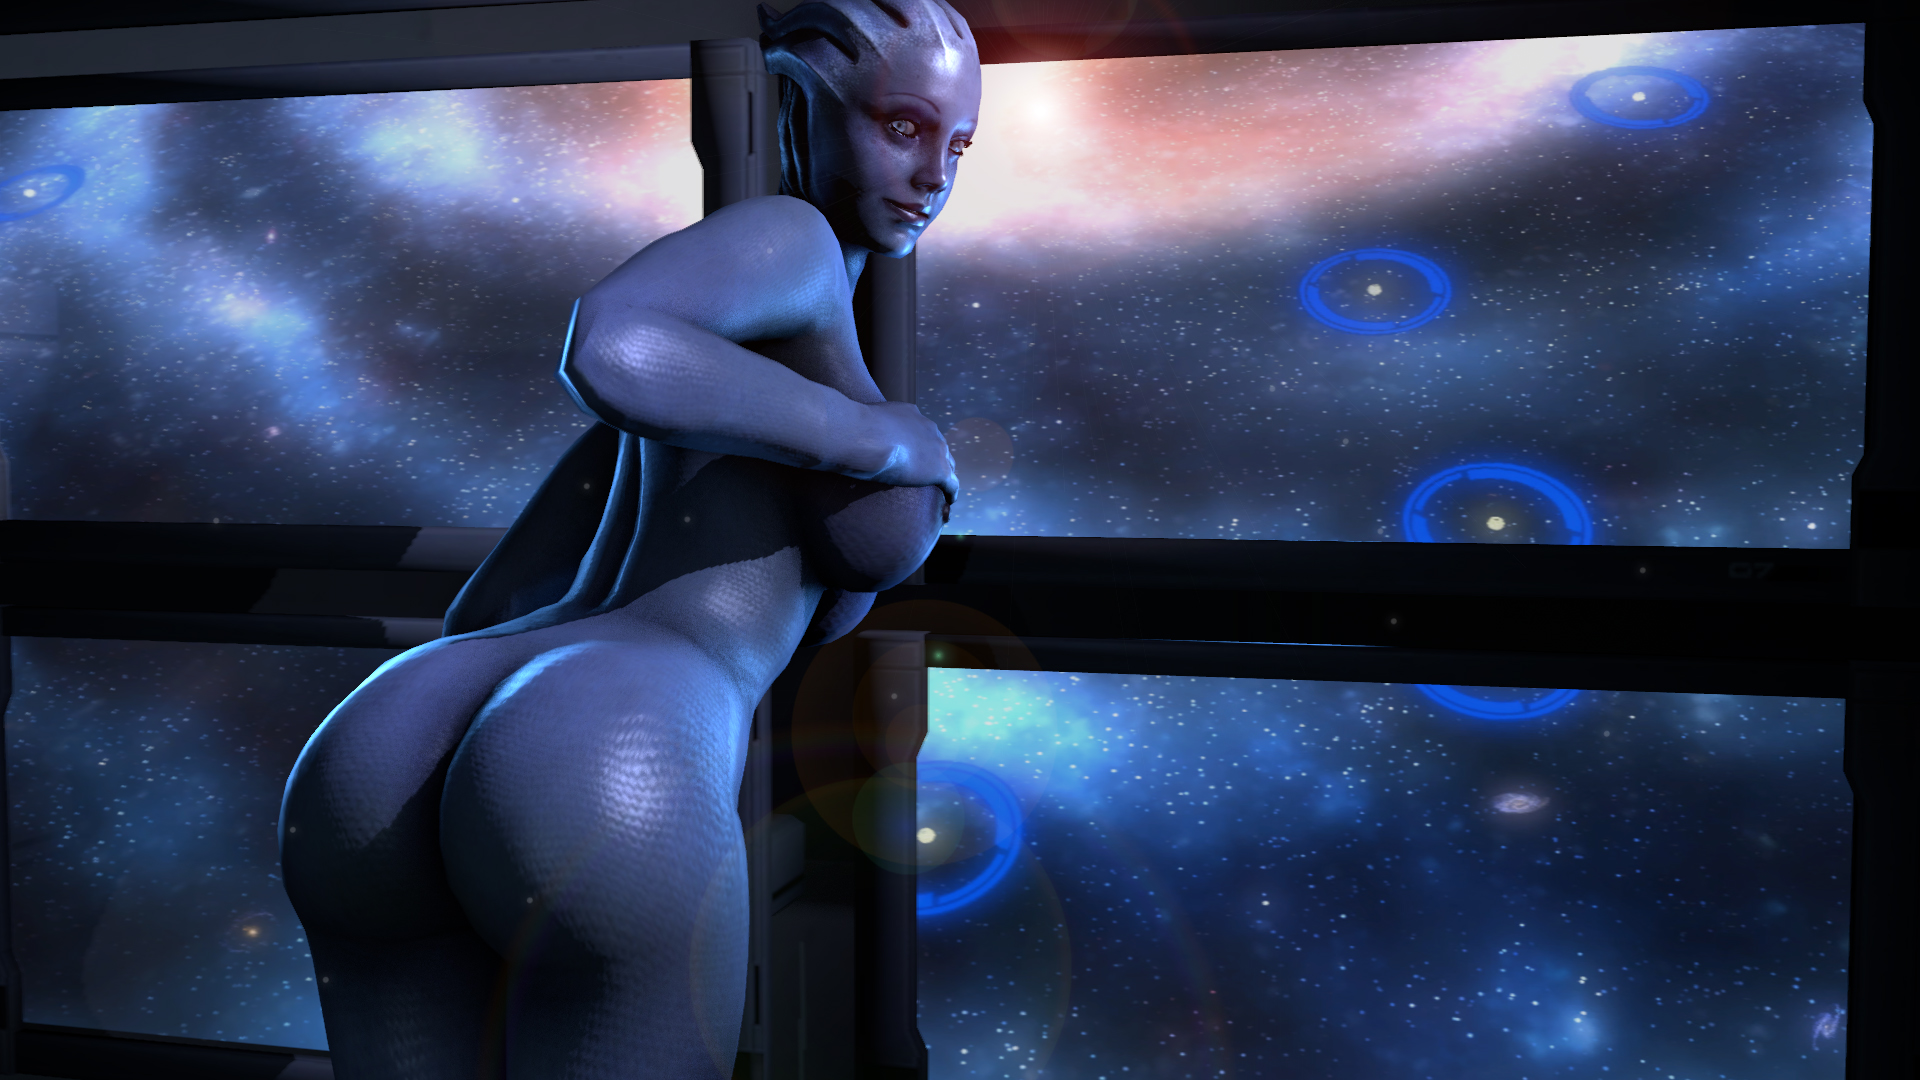 Liara sex hentia picture